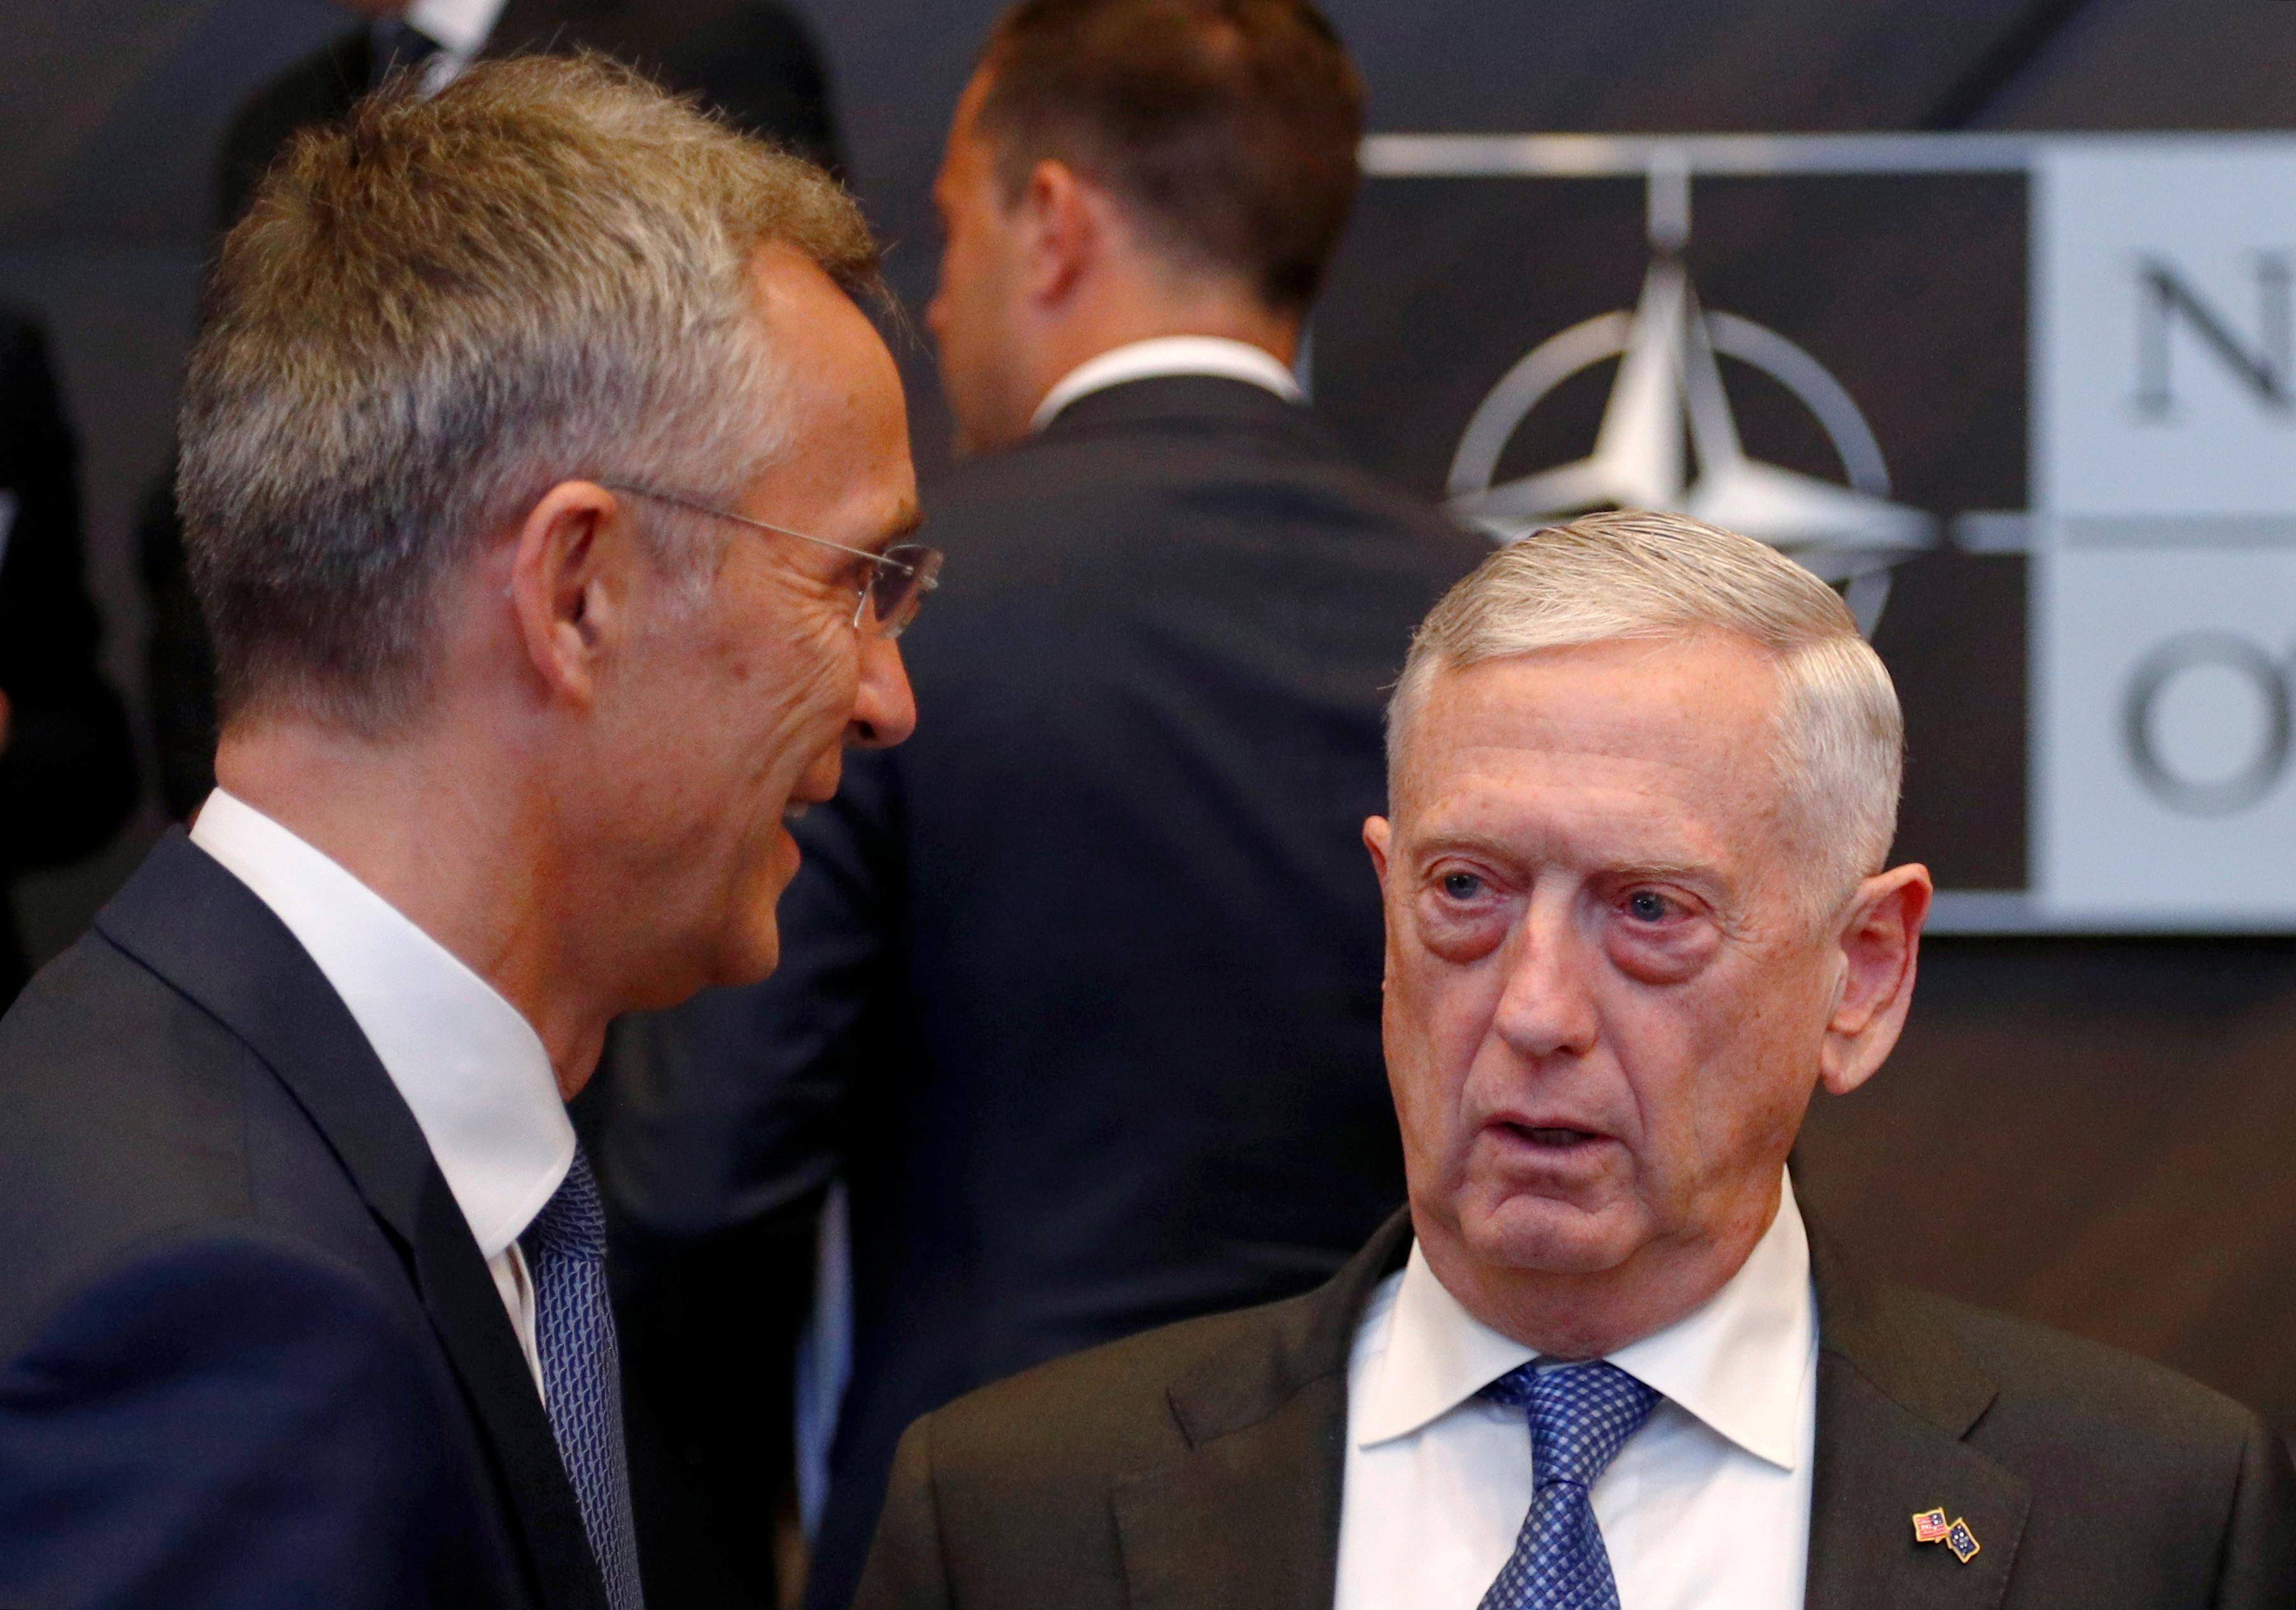 U.S. Defense Secretary says Russian violation of arms control treaty 'untenable'